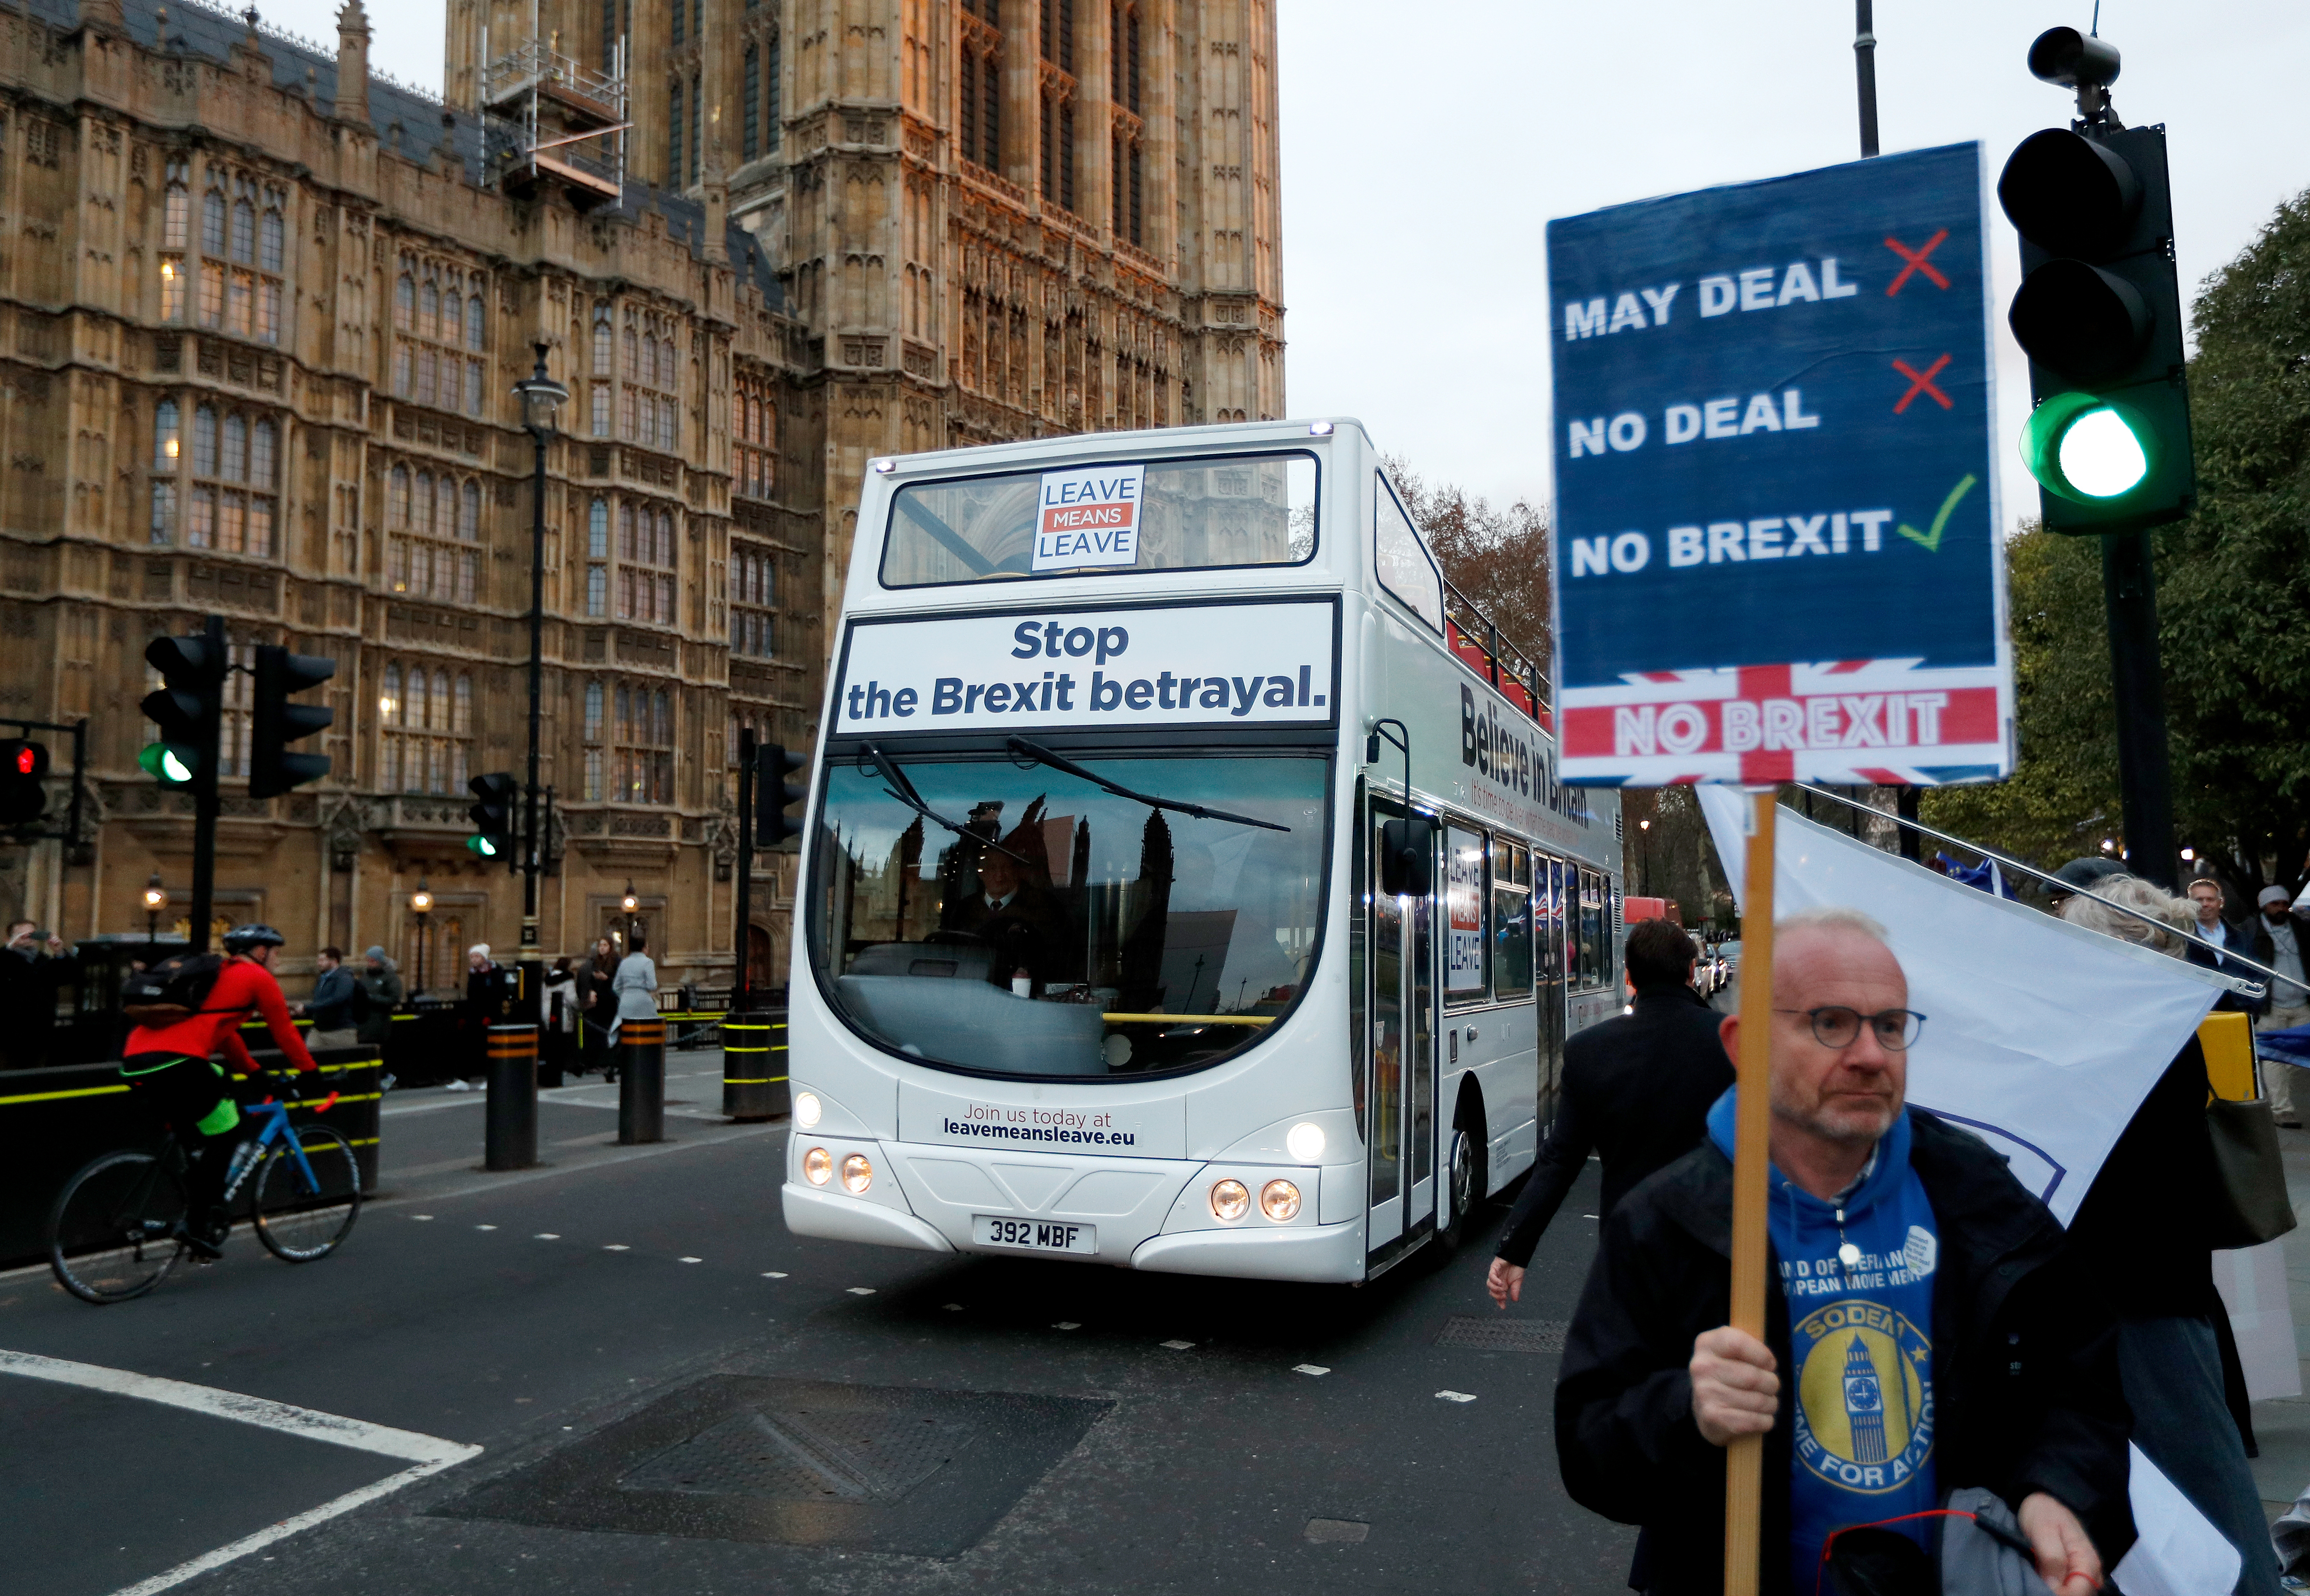 FILE PHOTO: A bus with a pro-Brexit message passes an anti-Brexit demonstrator outside the Houses of Parliament in London, Britain, December 10, 2018. REUTERS/Peter Nicholls